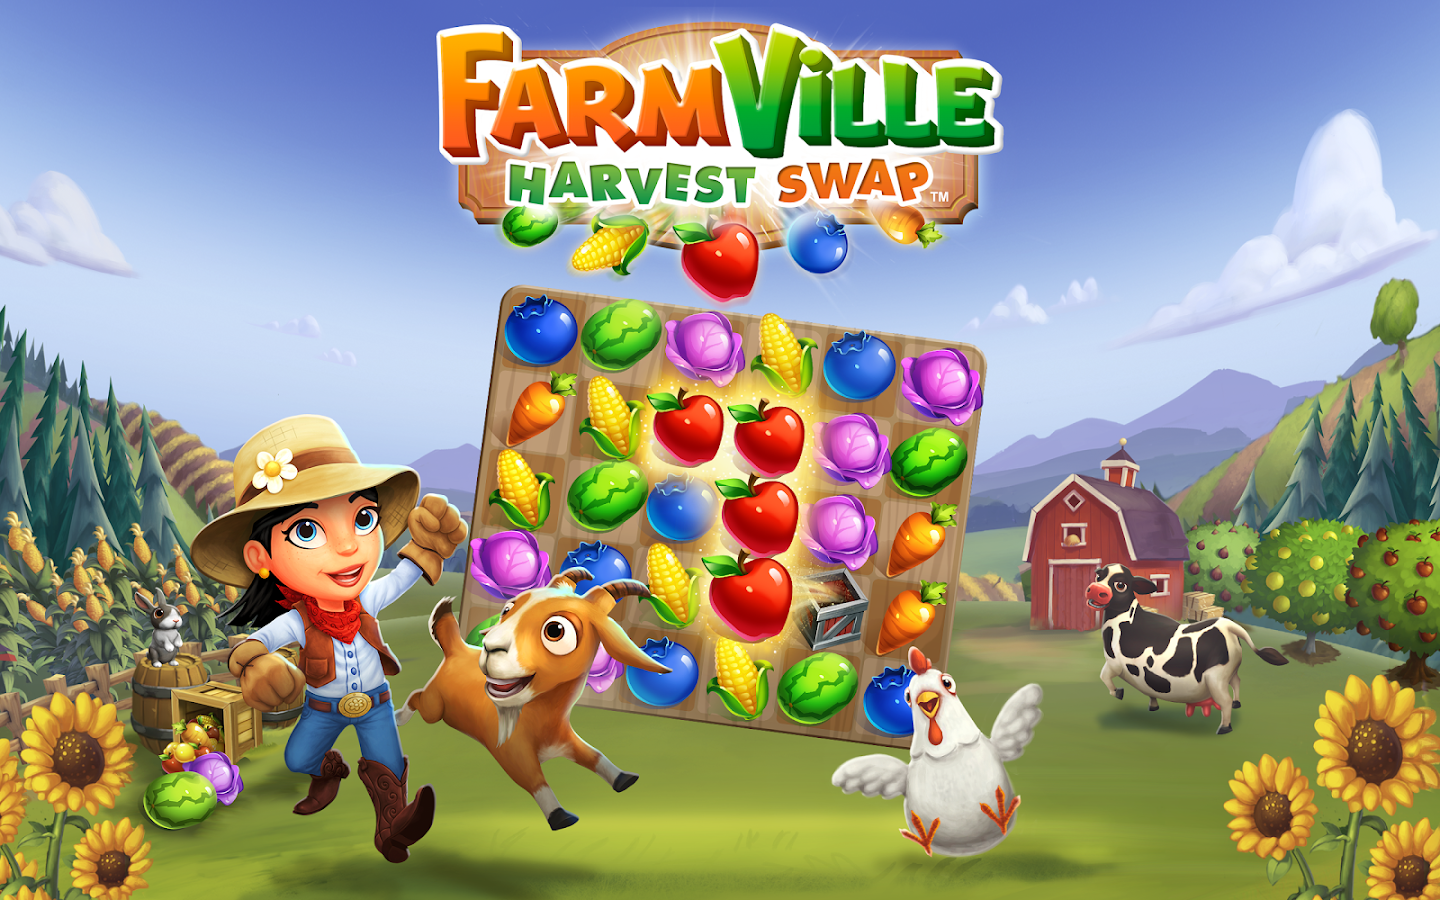 FarmVille: Harvest Swap Screenshot 11